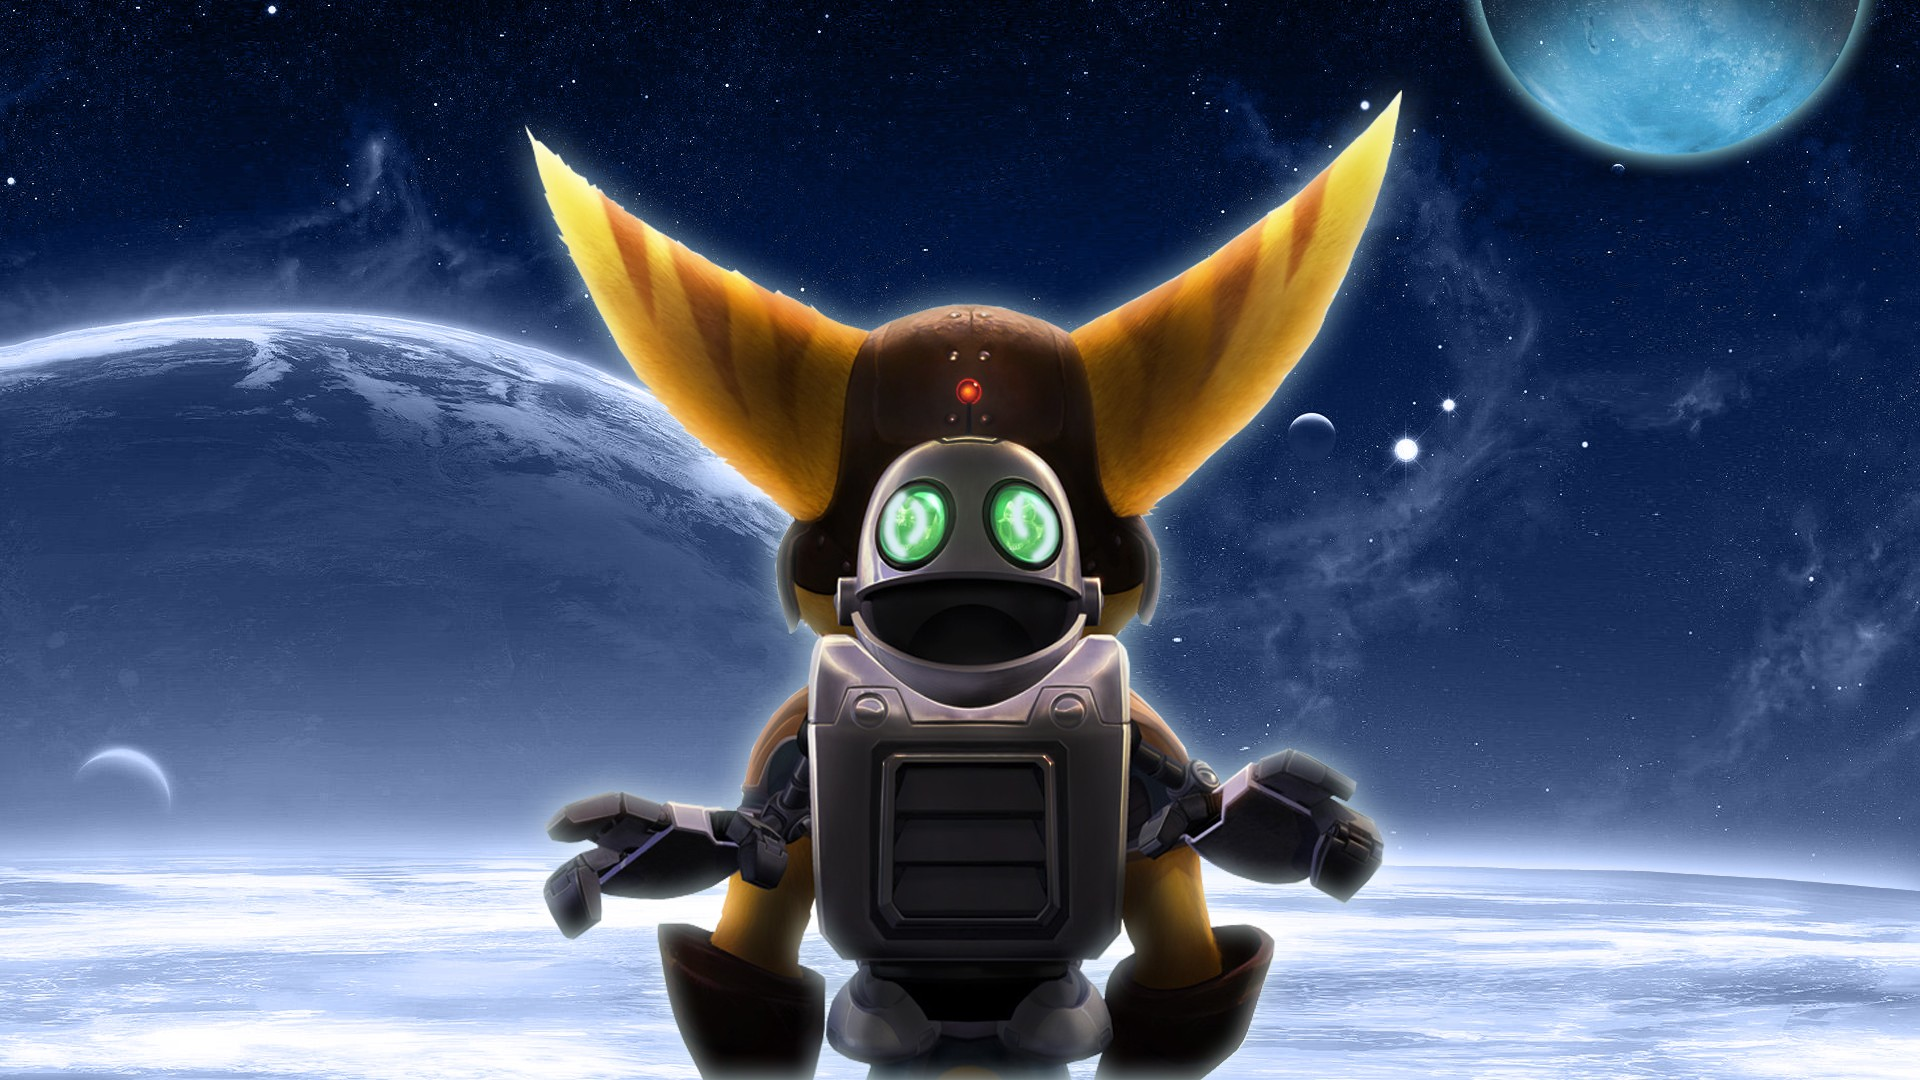 Ratchet & Clank Full HD Wallpaper And Background